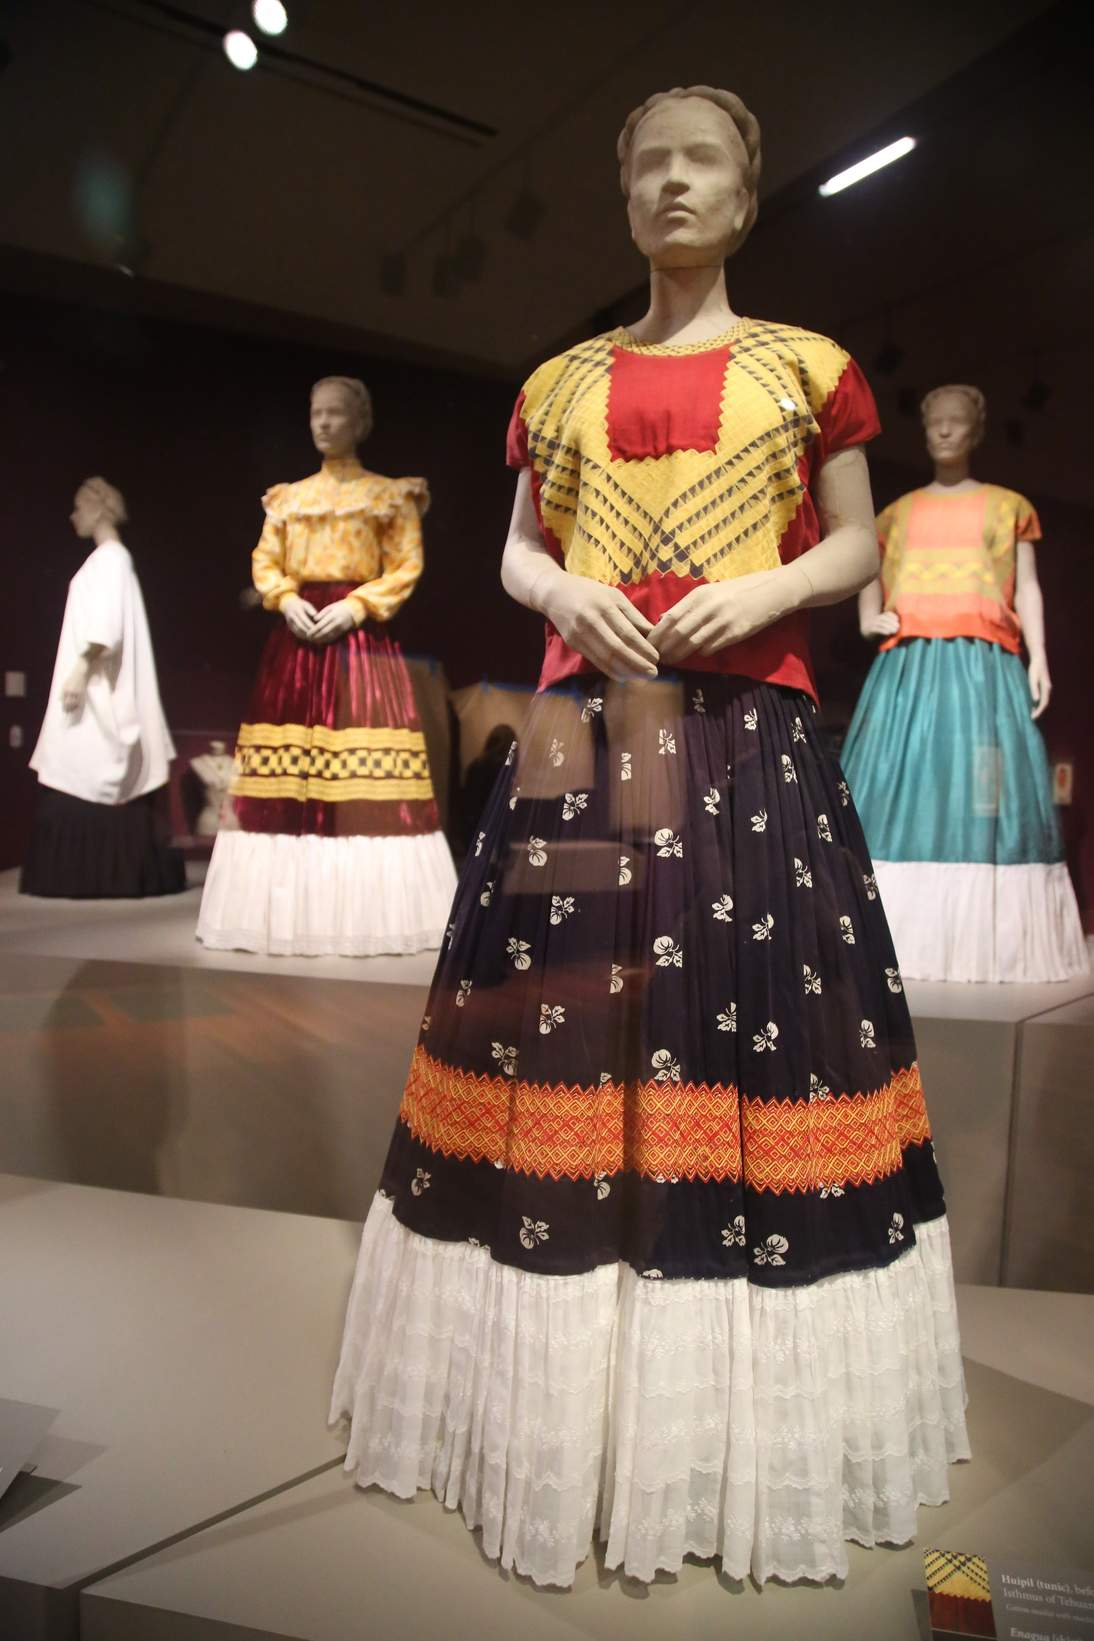 """Installation of """"Frida Kahlo: Appearances Can Be Deceiving"""" at the de Young museum, with Kahlo's ensembles from the Museo Frida Kahlo."""